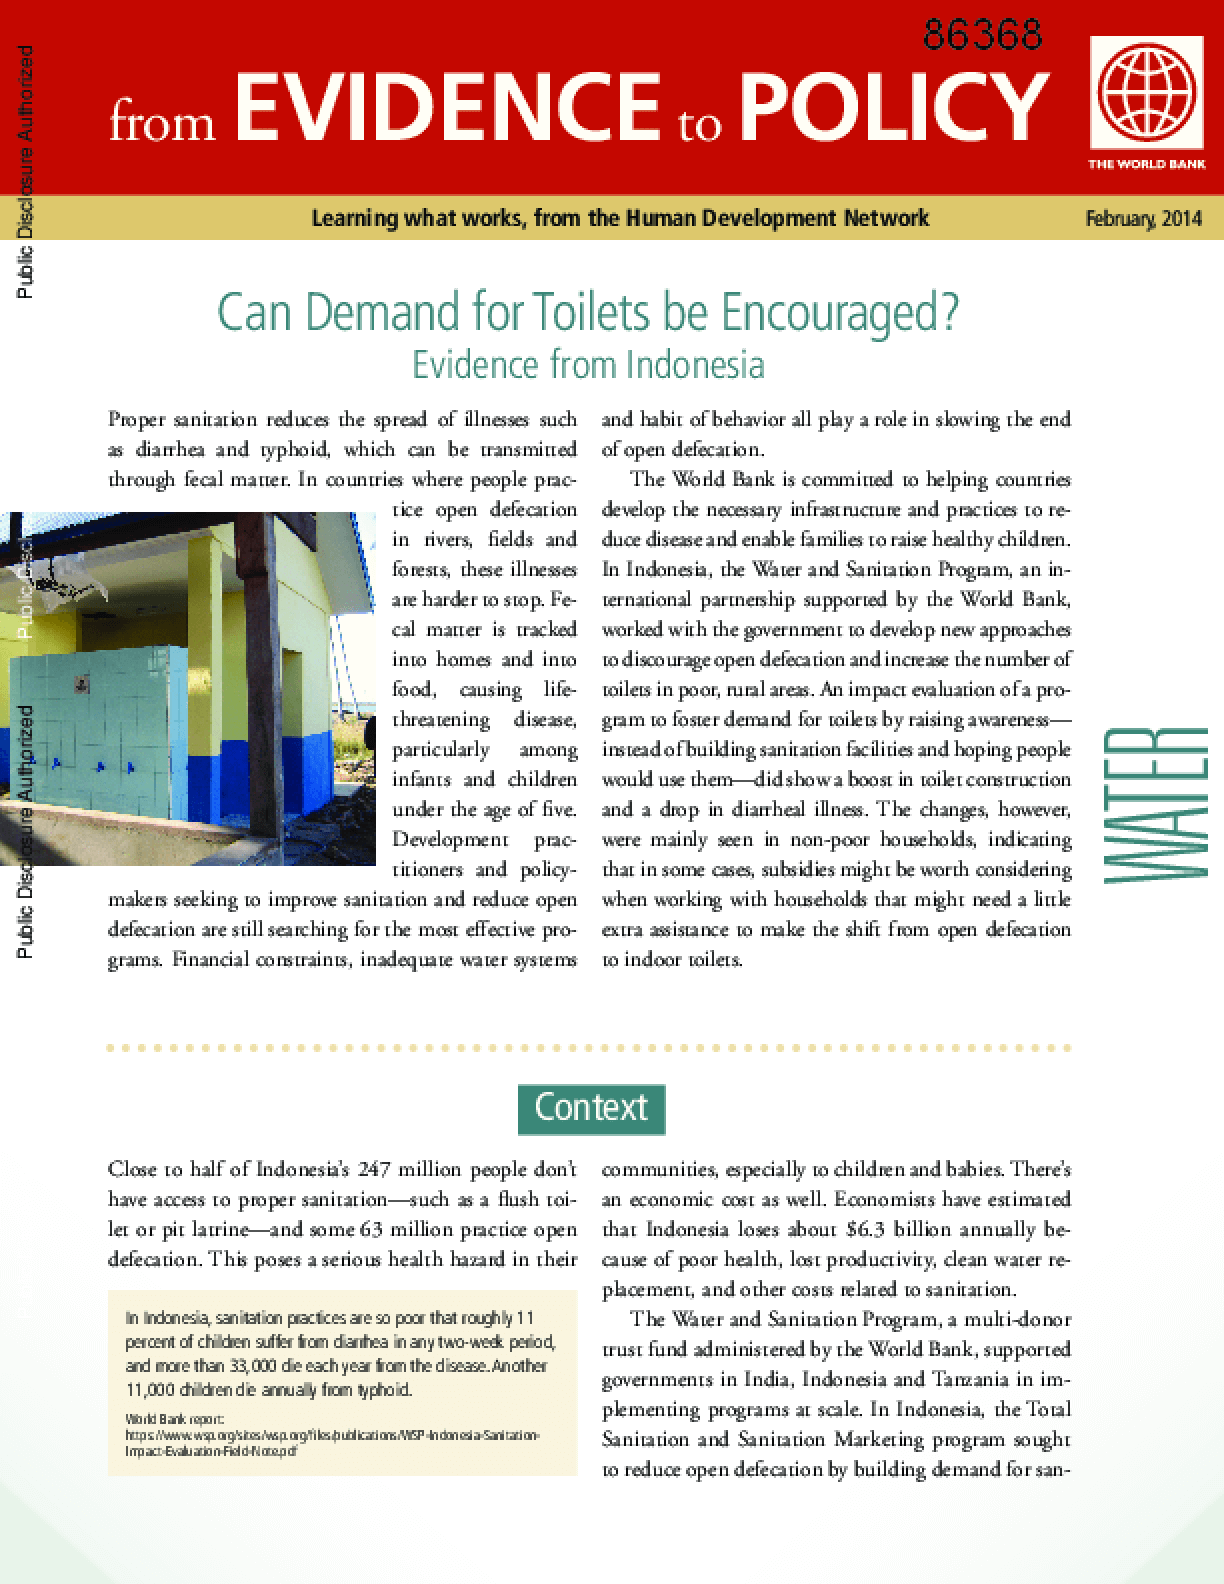 Can Demand for Toilets by Encouraged? Evidence from Indonesia